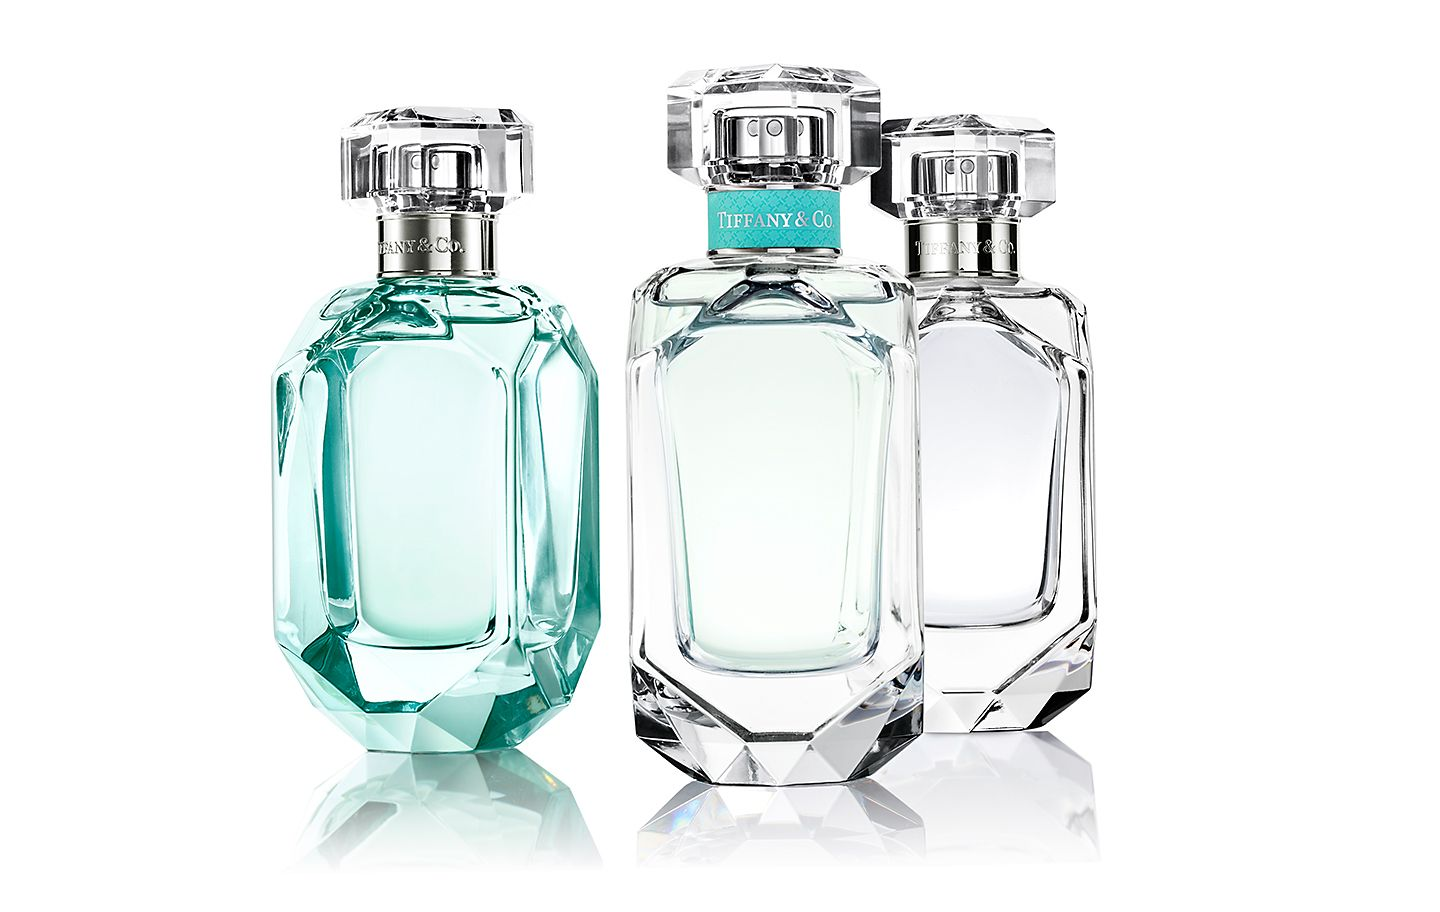 The Tiffany & Co. Fragrance Design Story